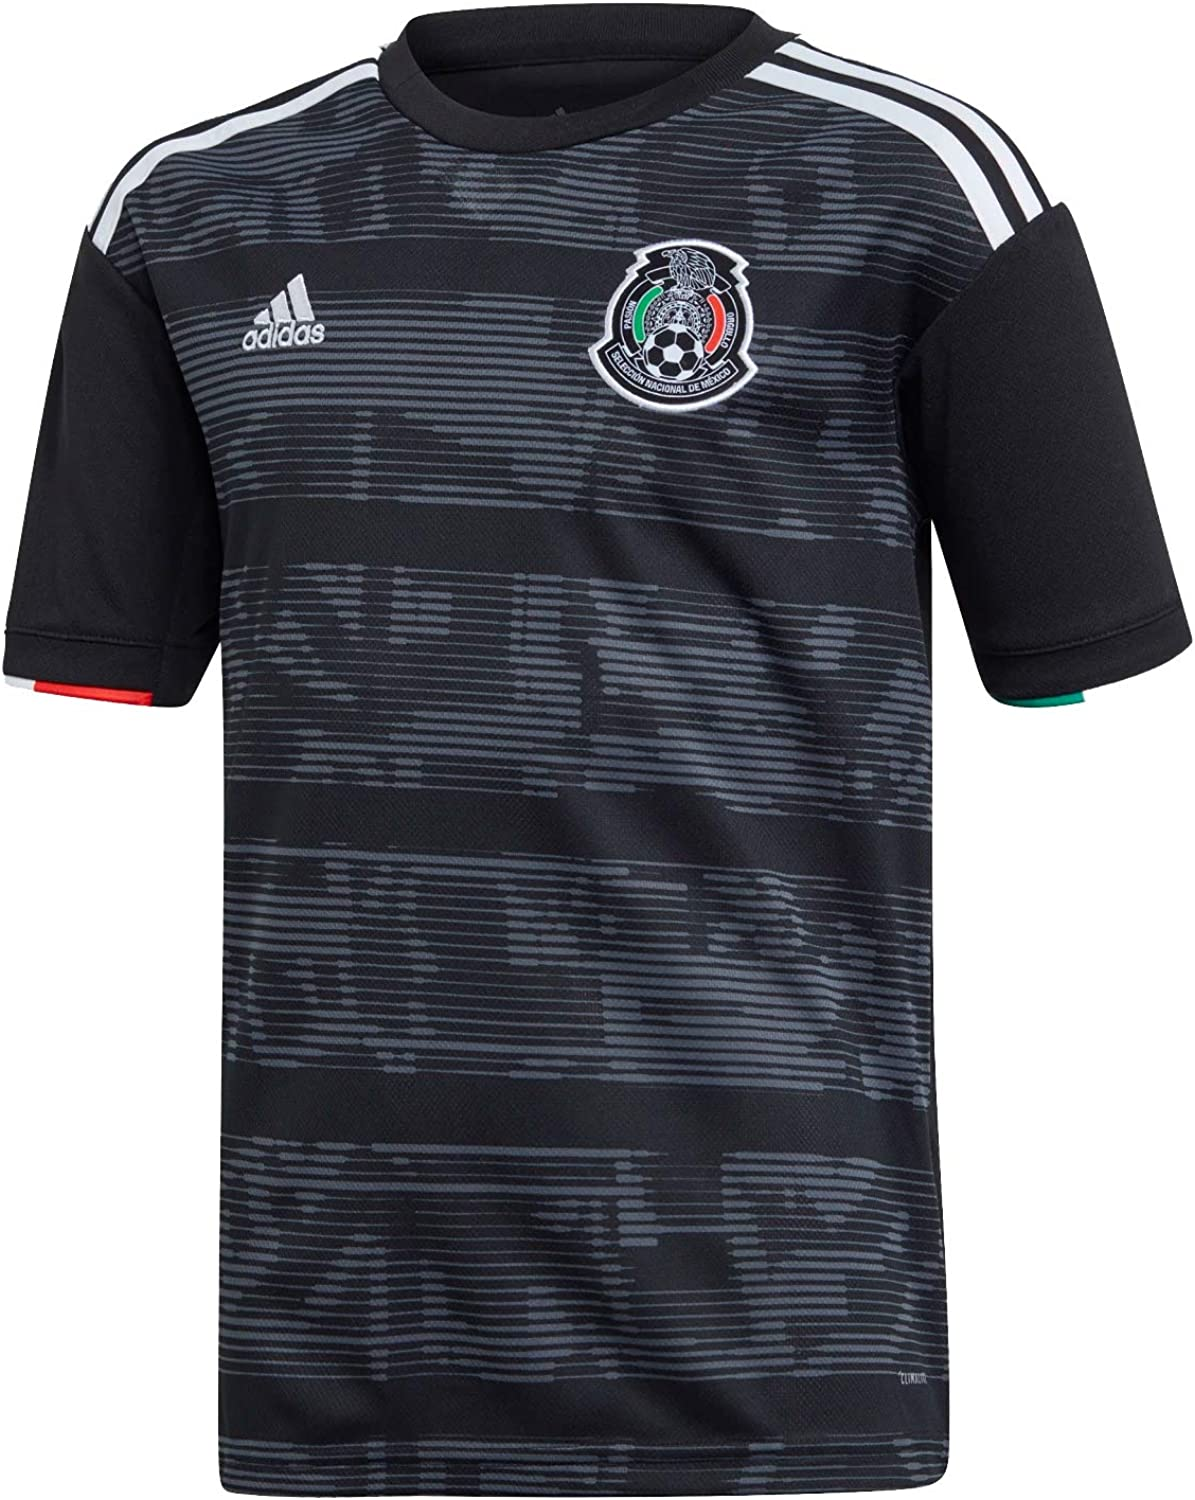 adidas Youth Soccer Mexico Home Jersey